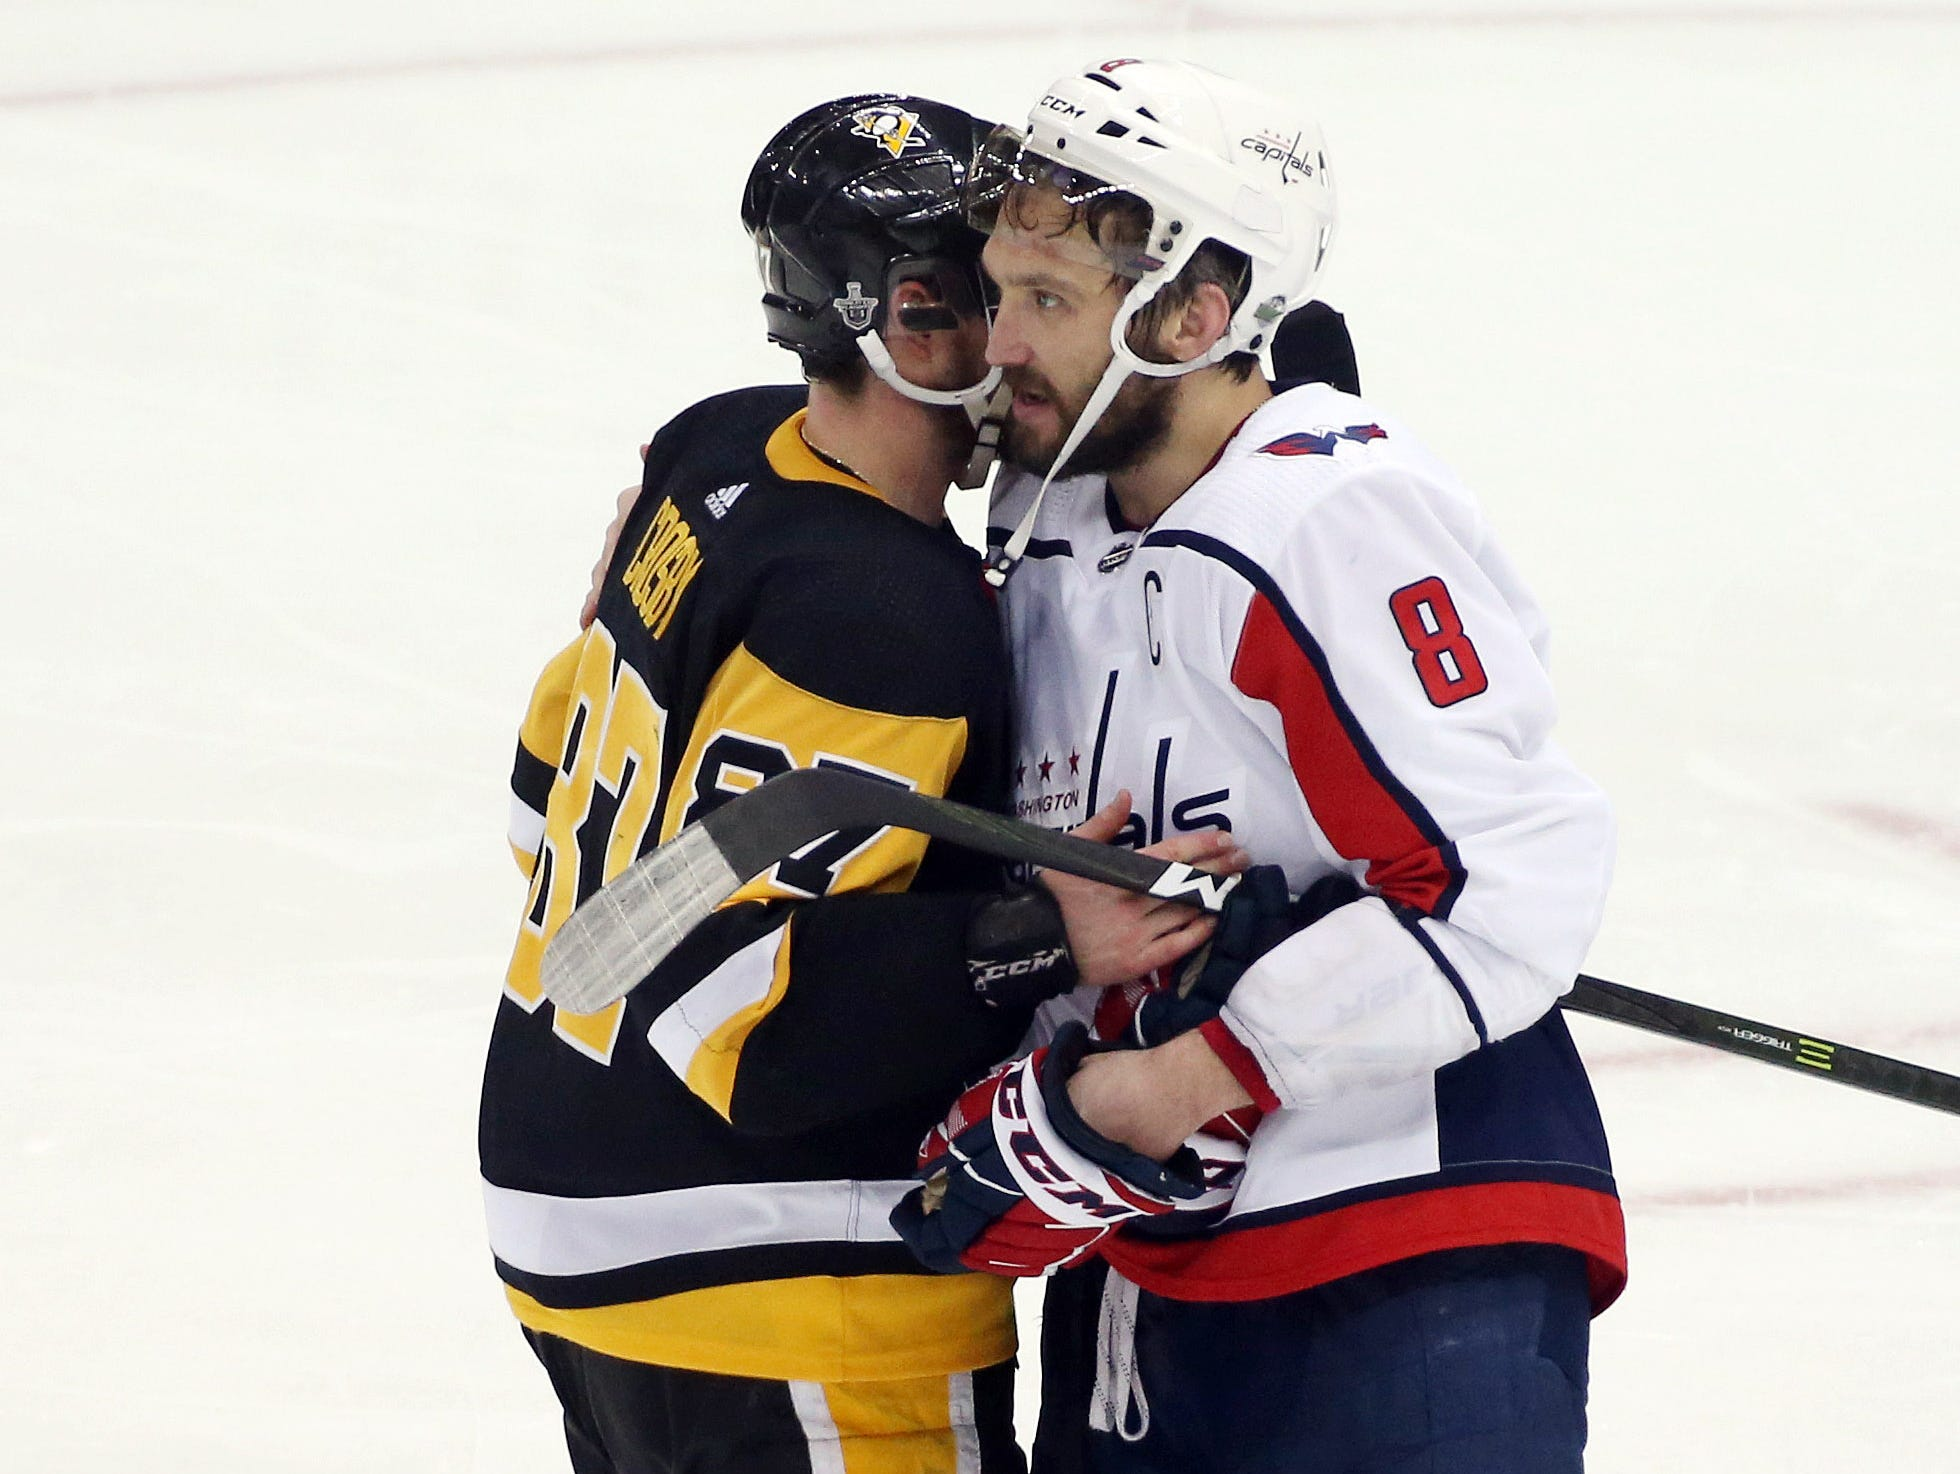 May 7: Pittsburgh Penguins center Sidney Crosby (87) and Washington Capitals left wing Alex Ovechkin (8) embrace after Game 6 of their second-round series, the first playoff round between the pair won by Ovechkin's team.